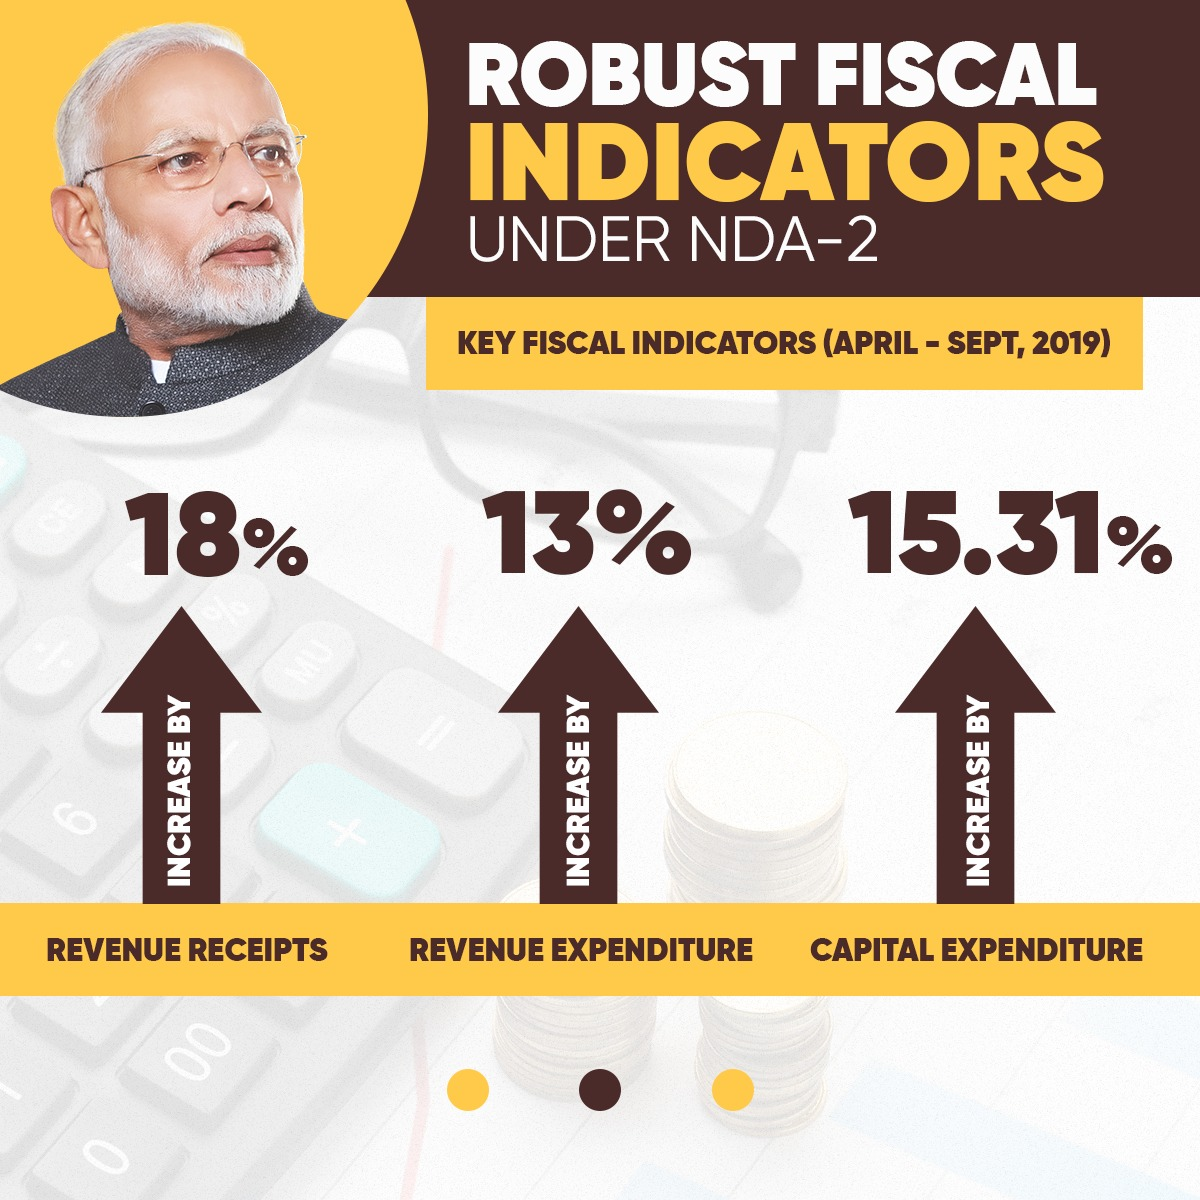 @nsitharaman @BJP4India @BJPLive Fiscal indicators remain robust under the second term of the Narendra Modi led NDA government.